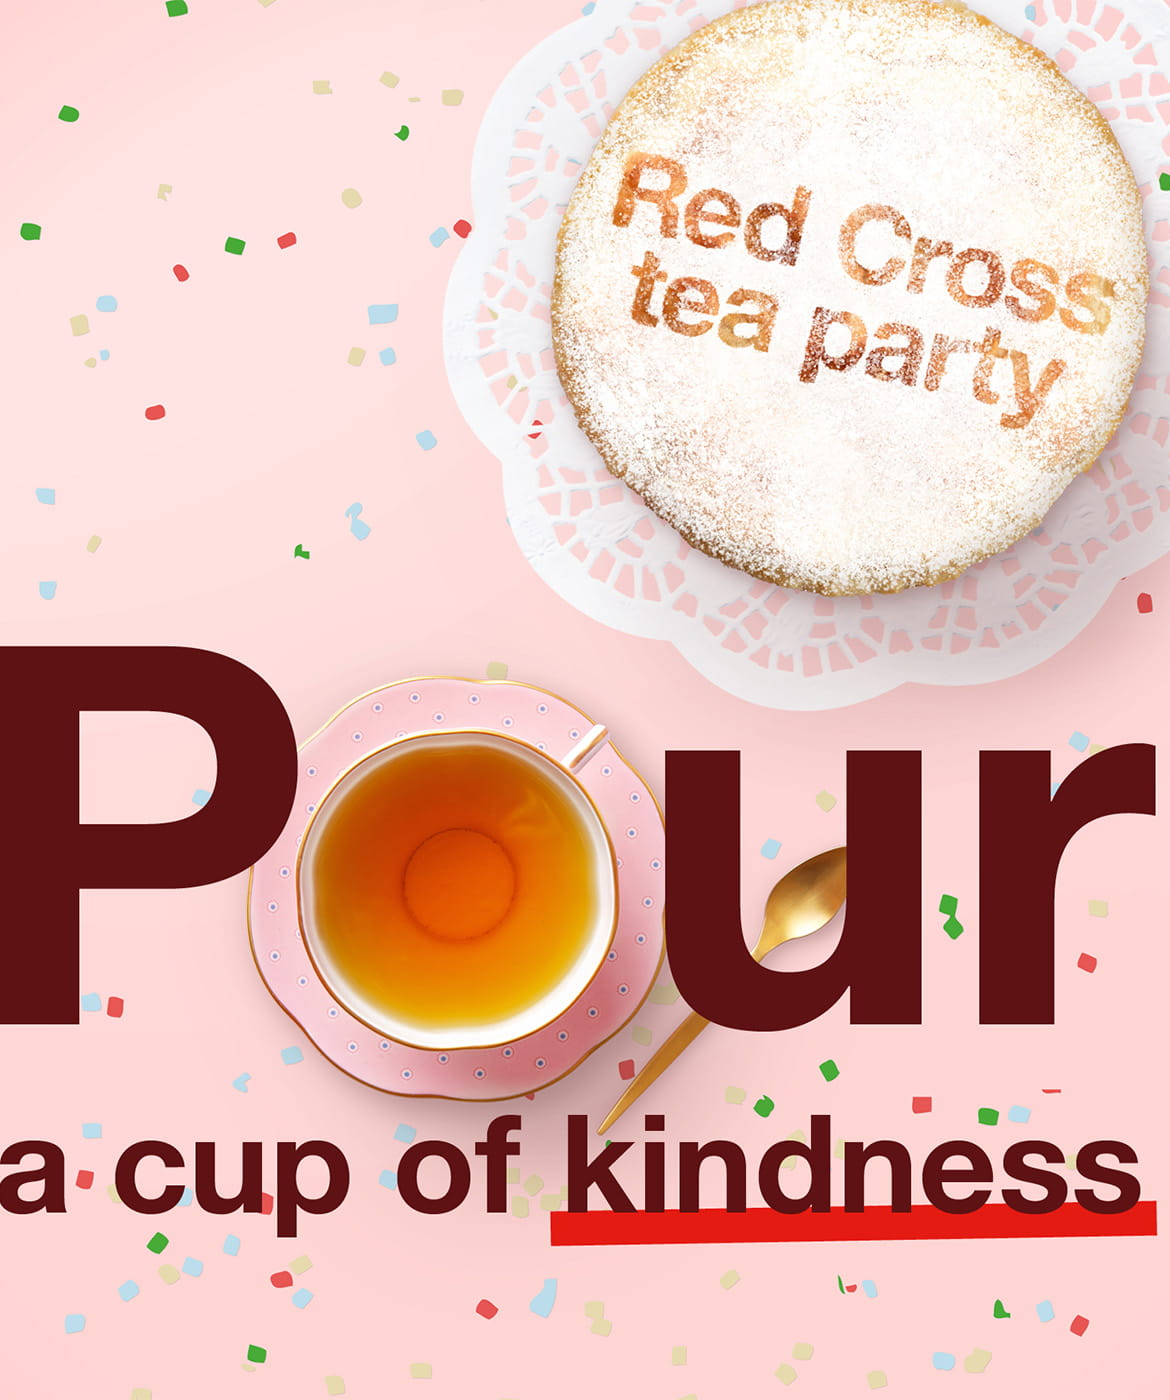 Pour a cup of kindness logo